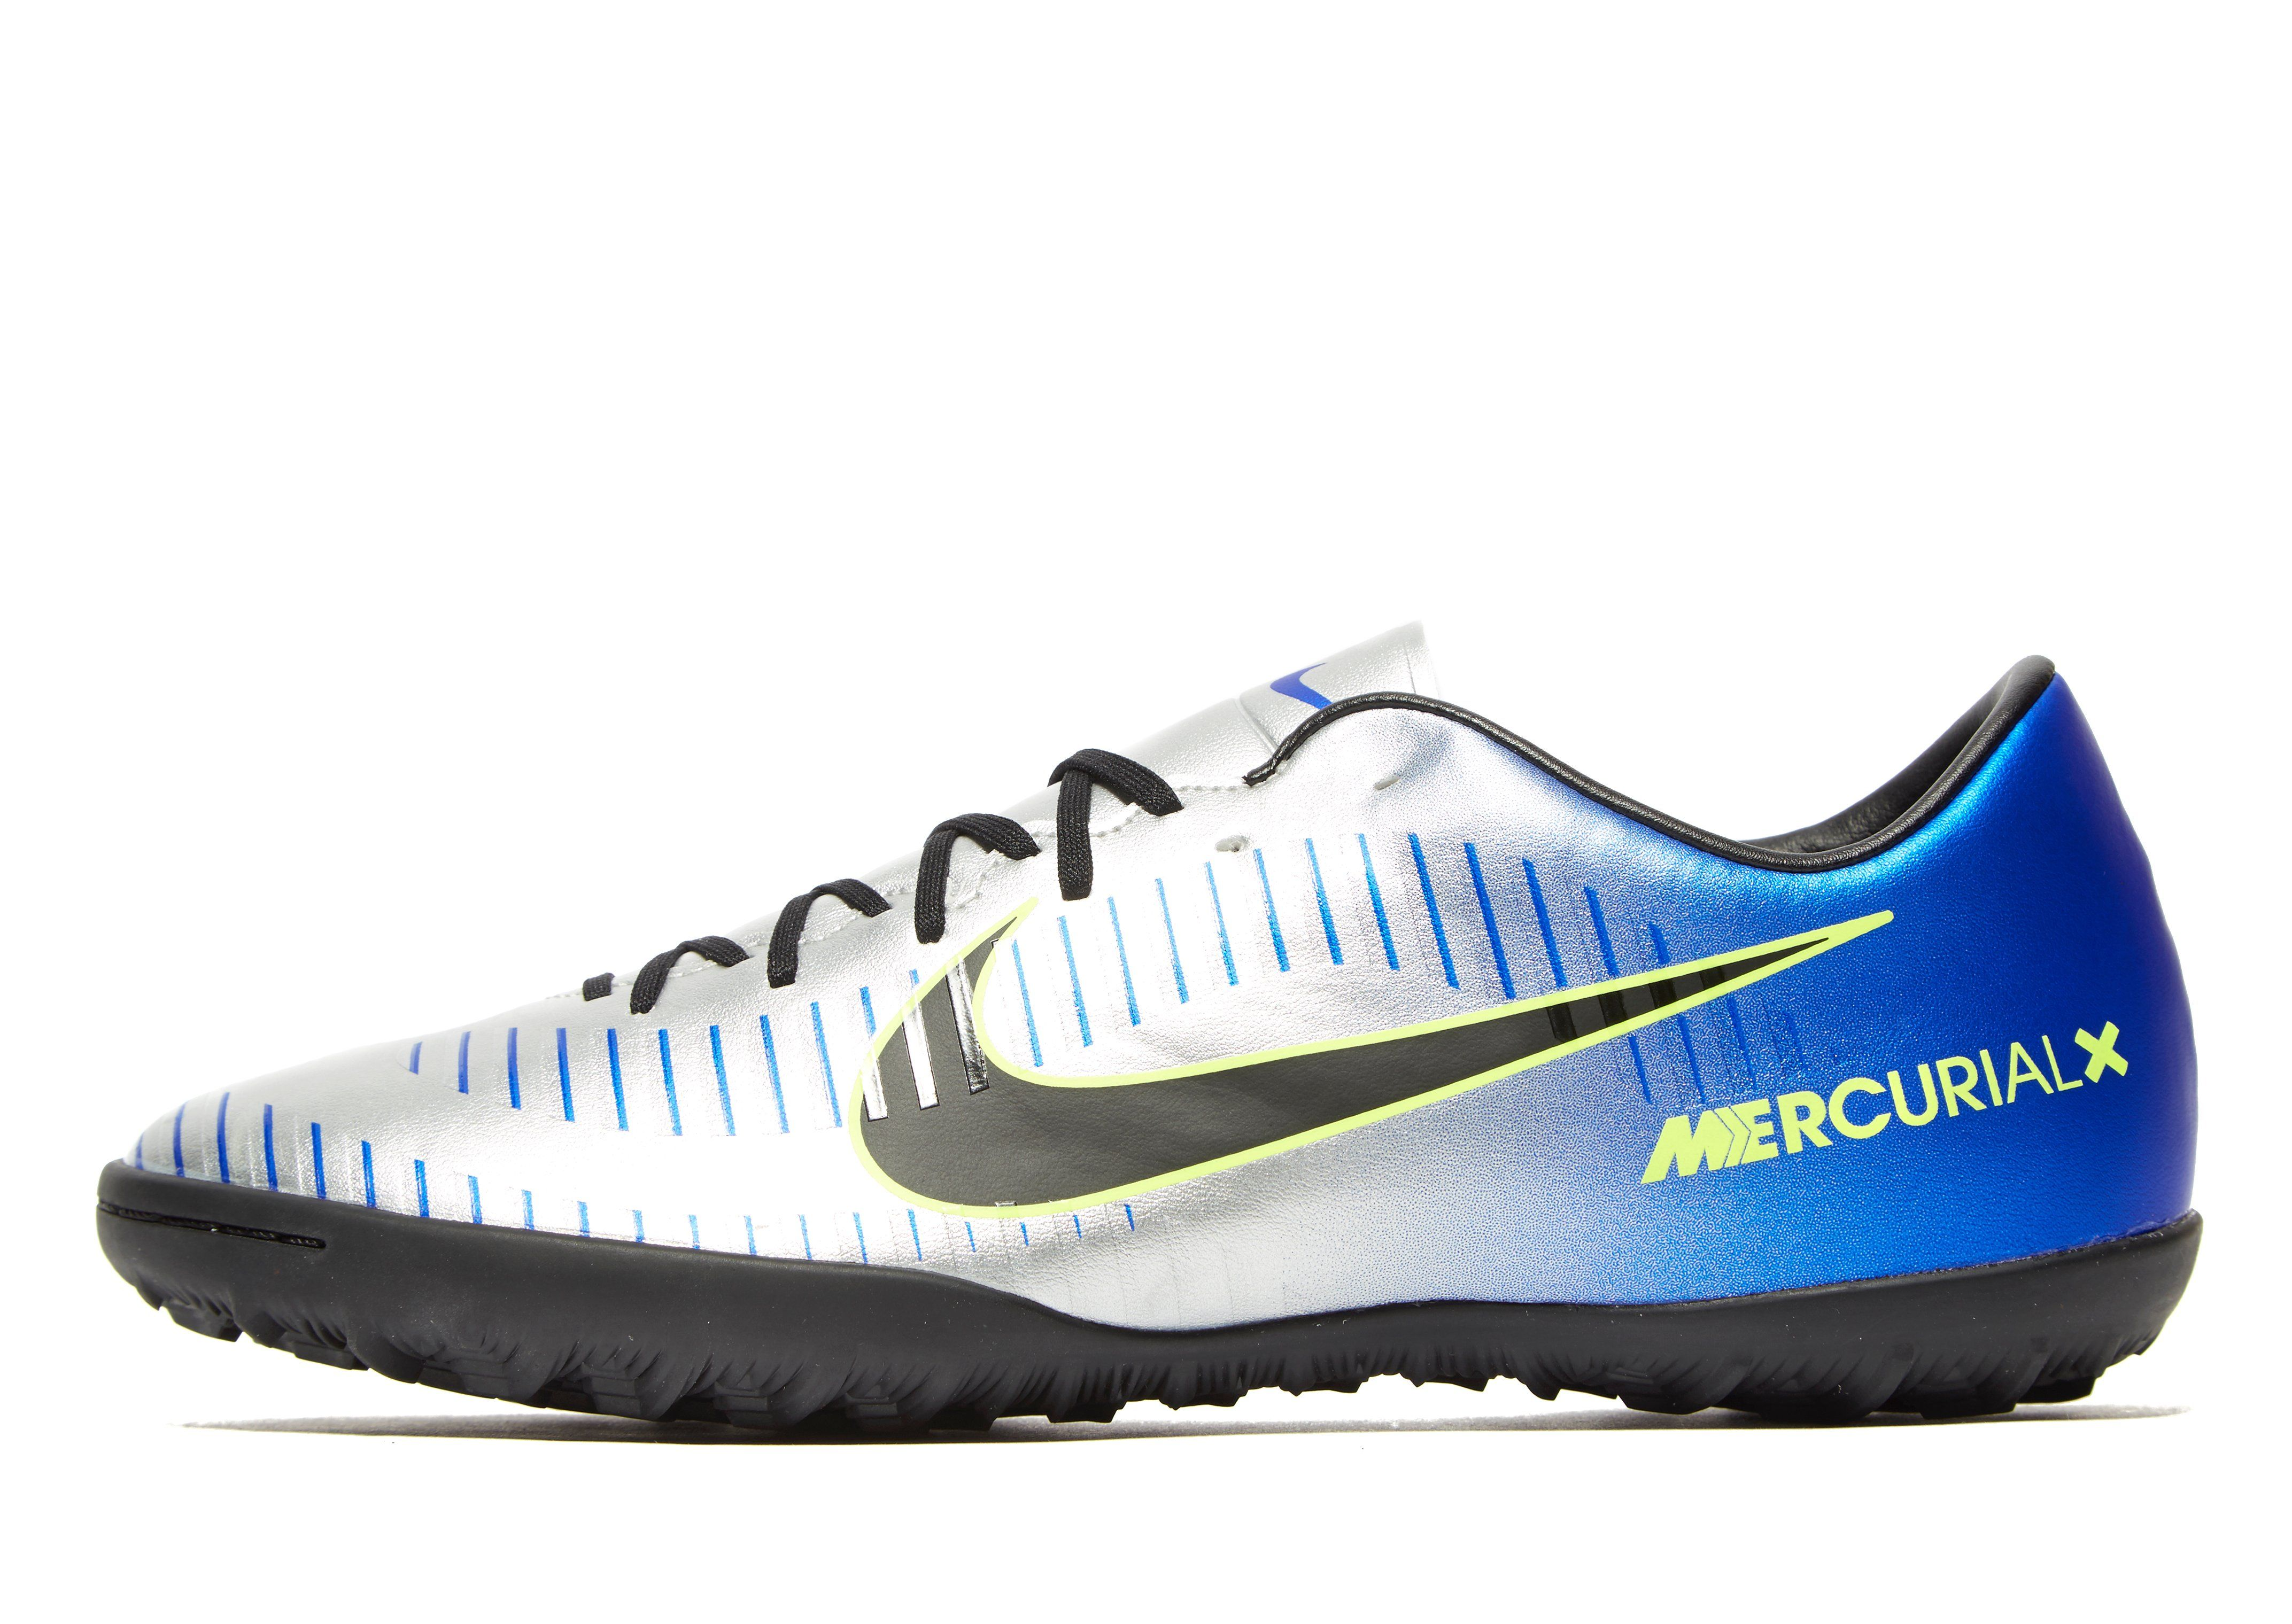 The Newest Nike Mercurial For Neymar - Musée des impressionnismes ... b0bef8120fe80